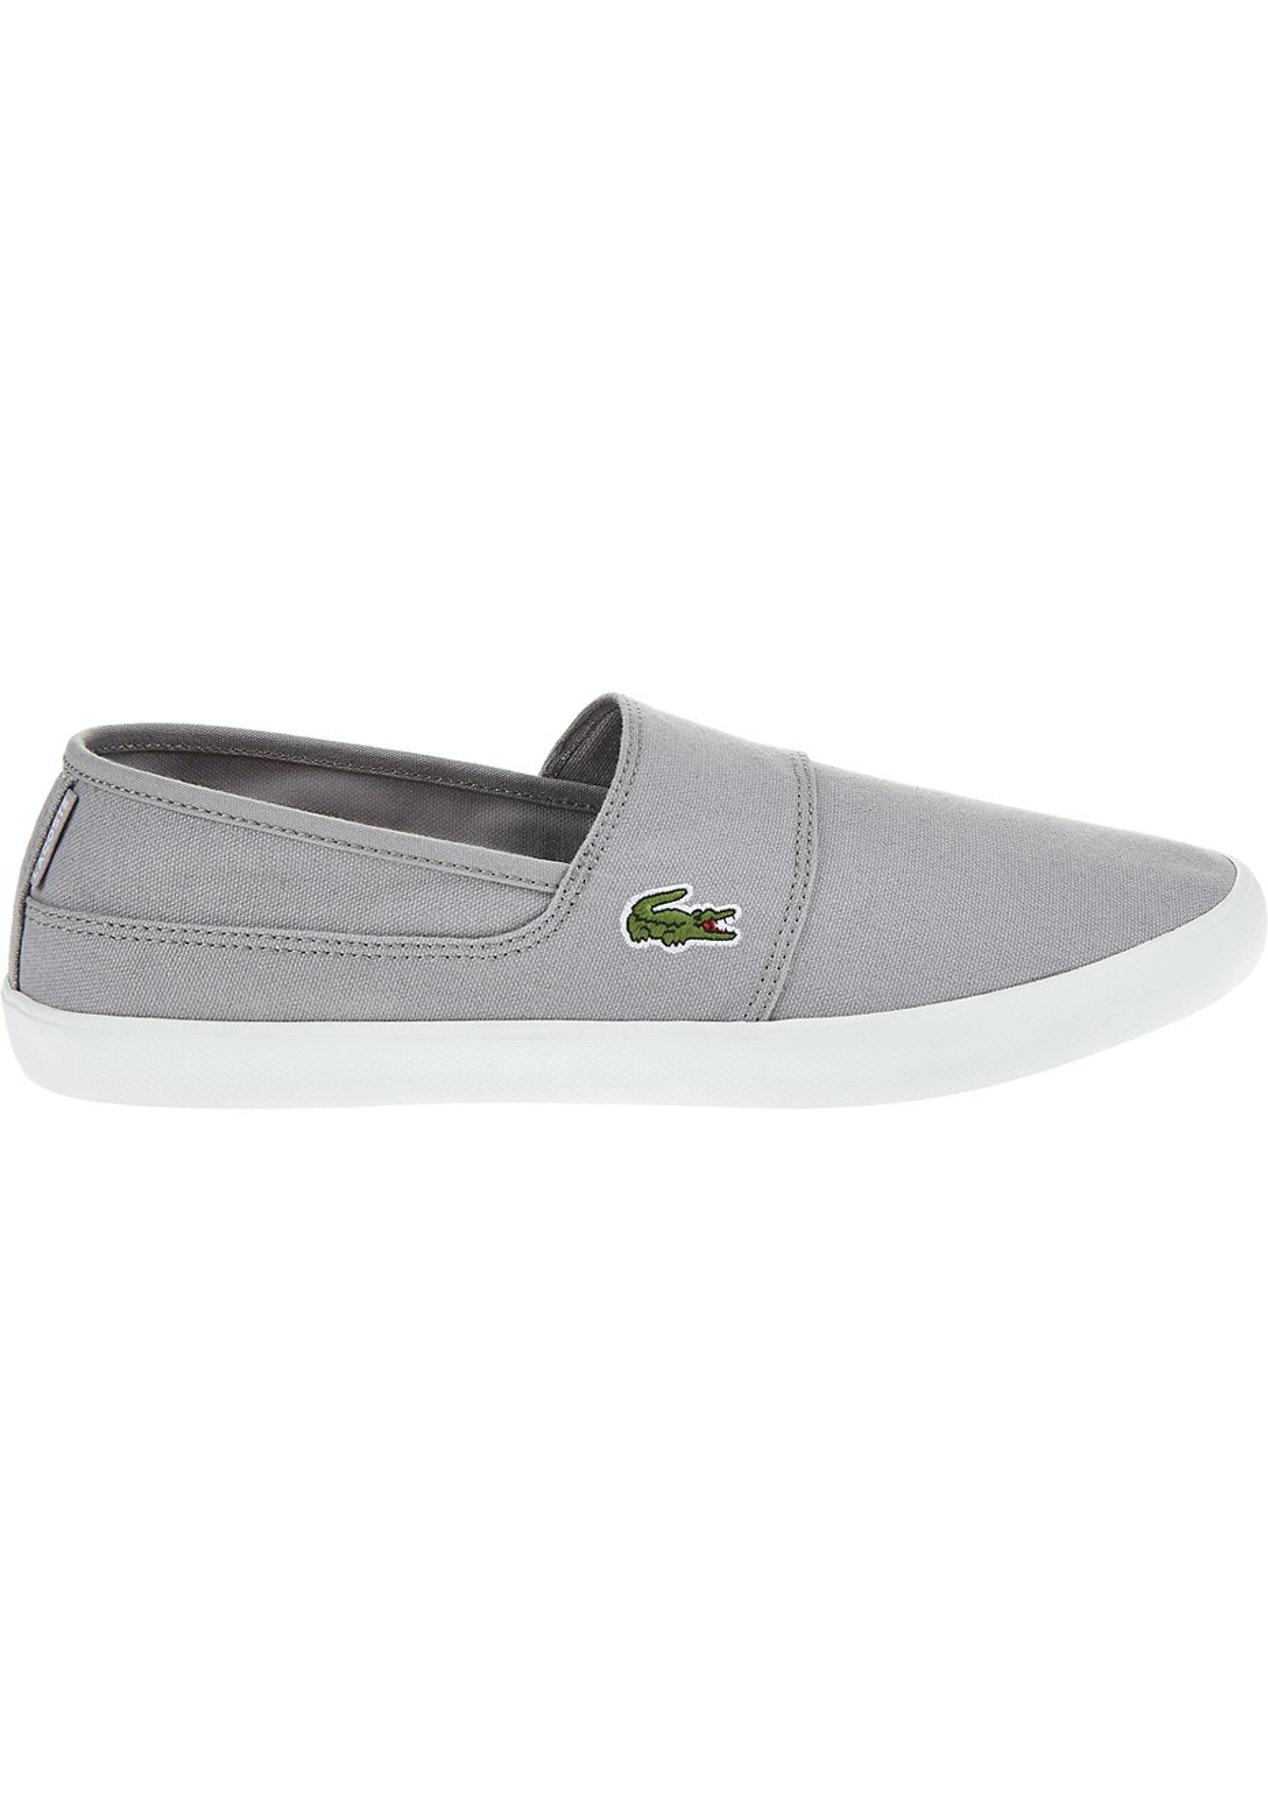 cd4b1292d698 Mens Lacoste - Marice Lcr - Grey Grey - Mens Shoe Sell Out - Onceit